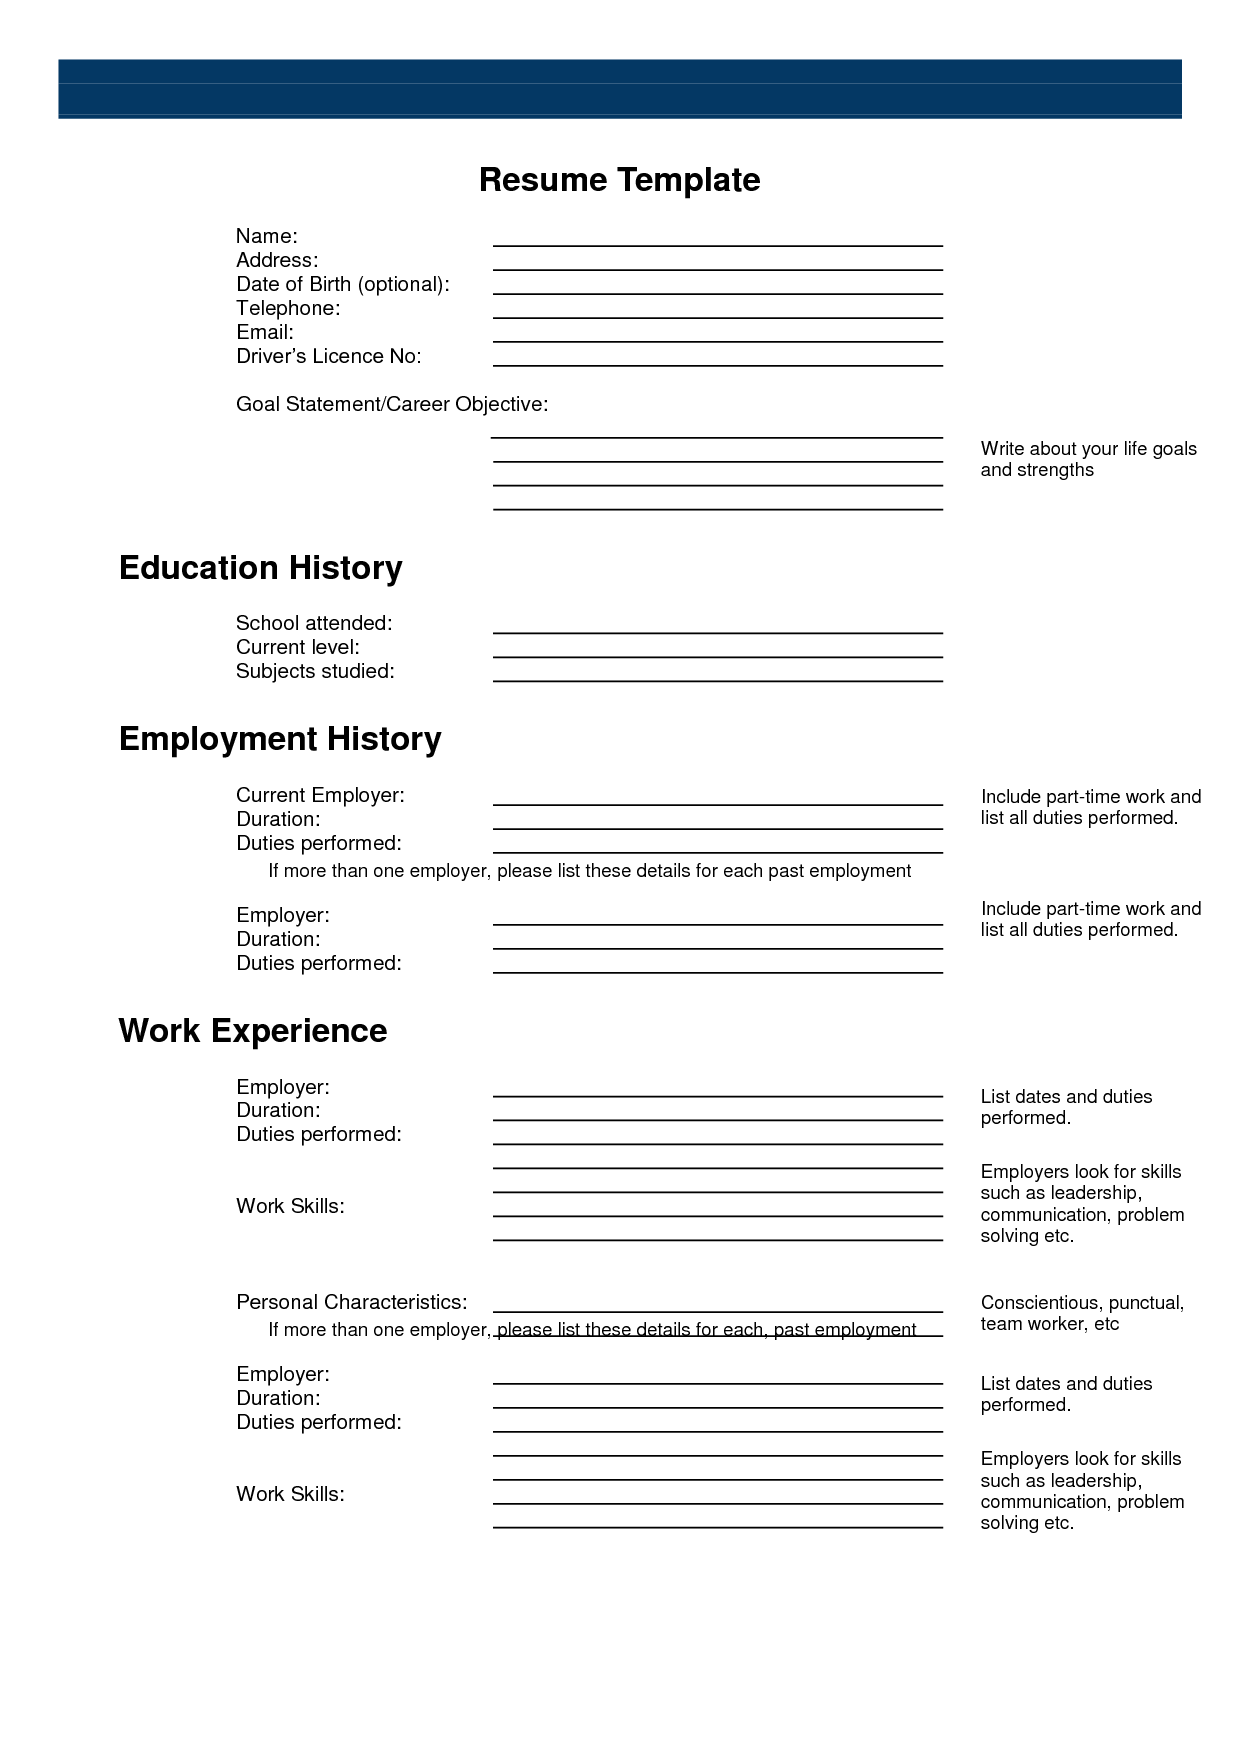 Free Printable Resume Templates Free Printable Sample Resume Templates  Httpwwwresumecareer